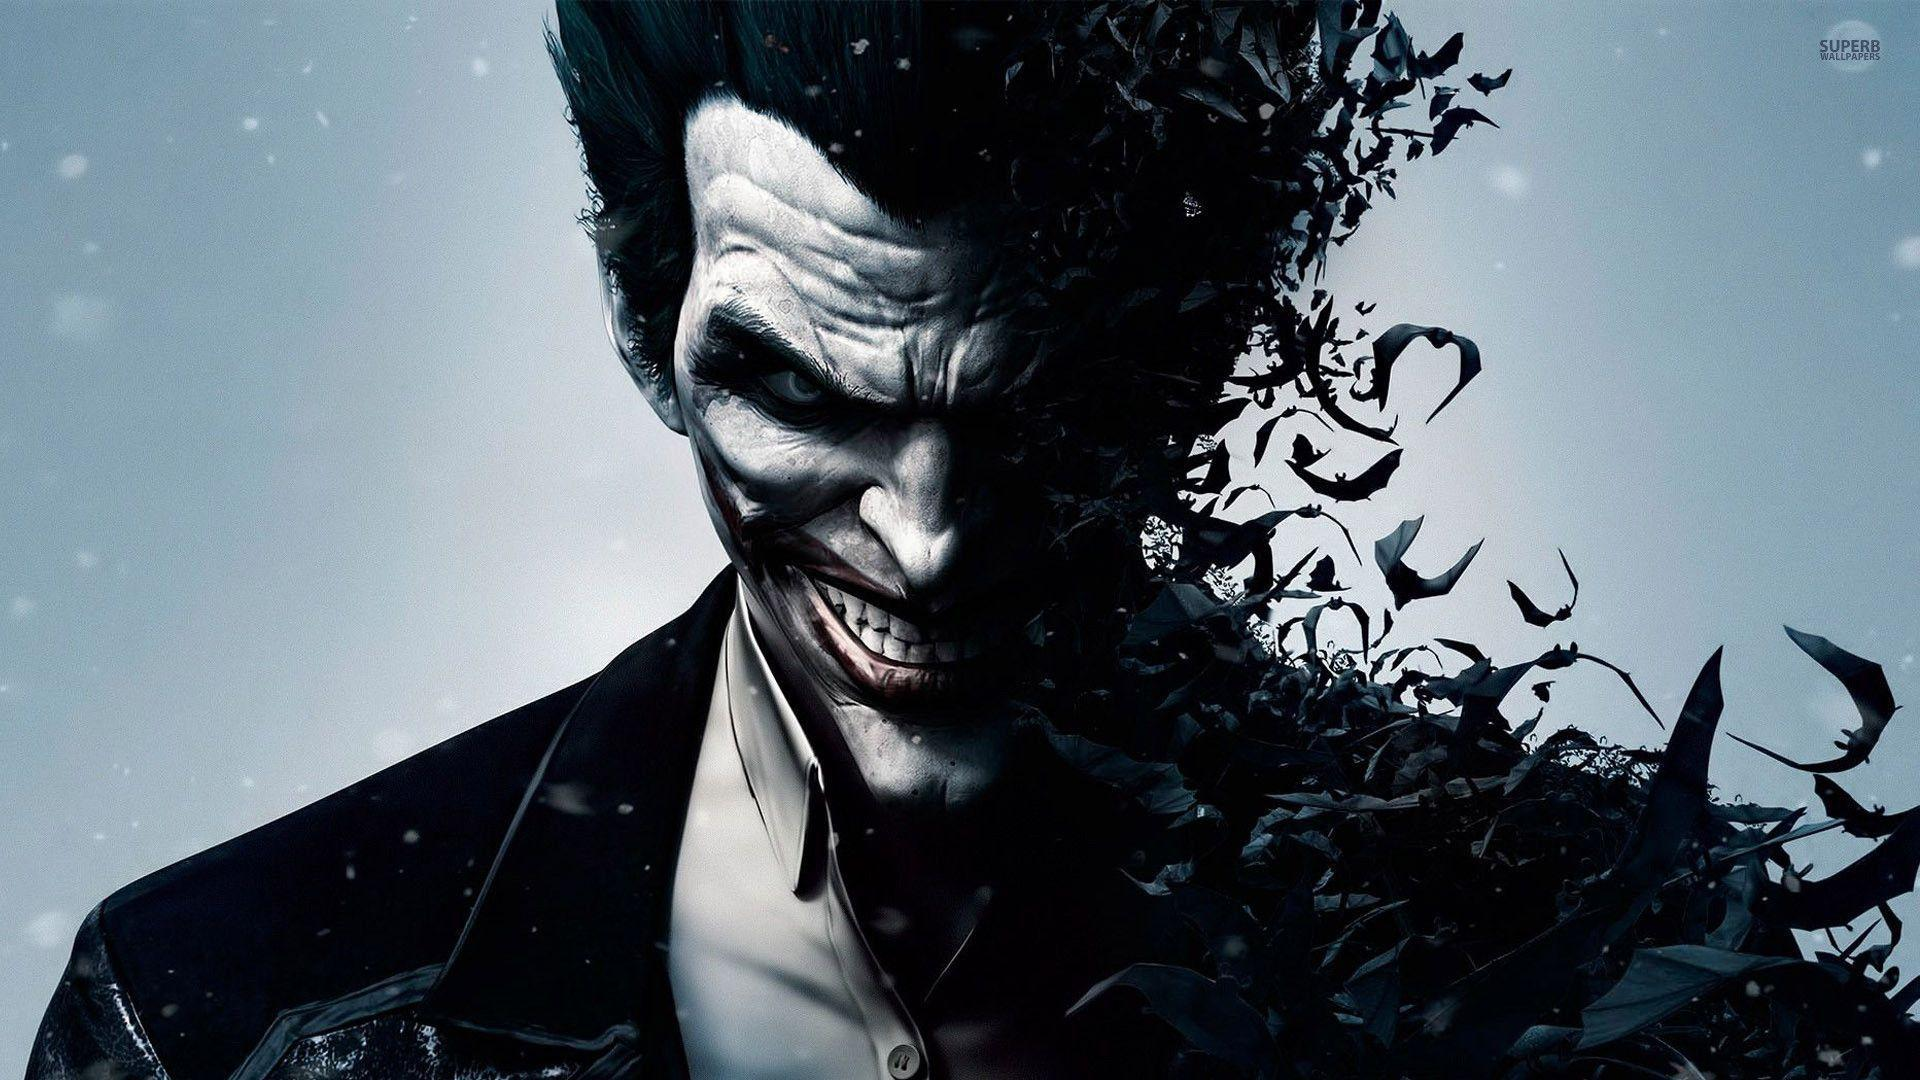 Batman Joker Wallpapers 1920x1080